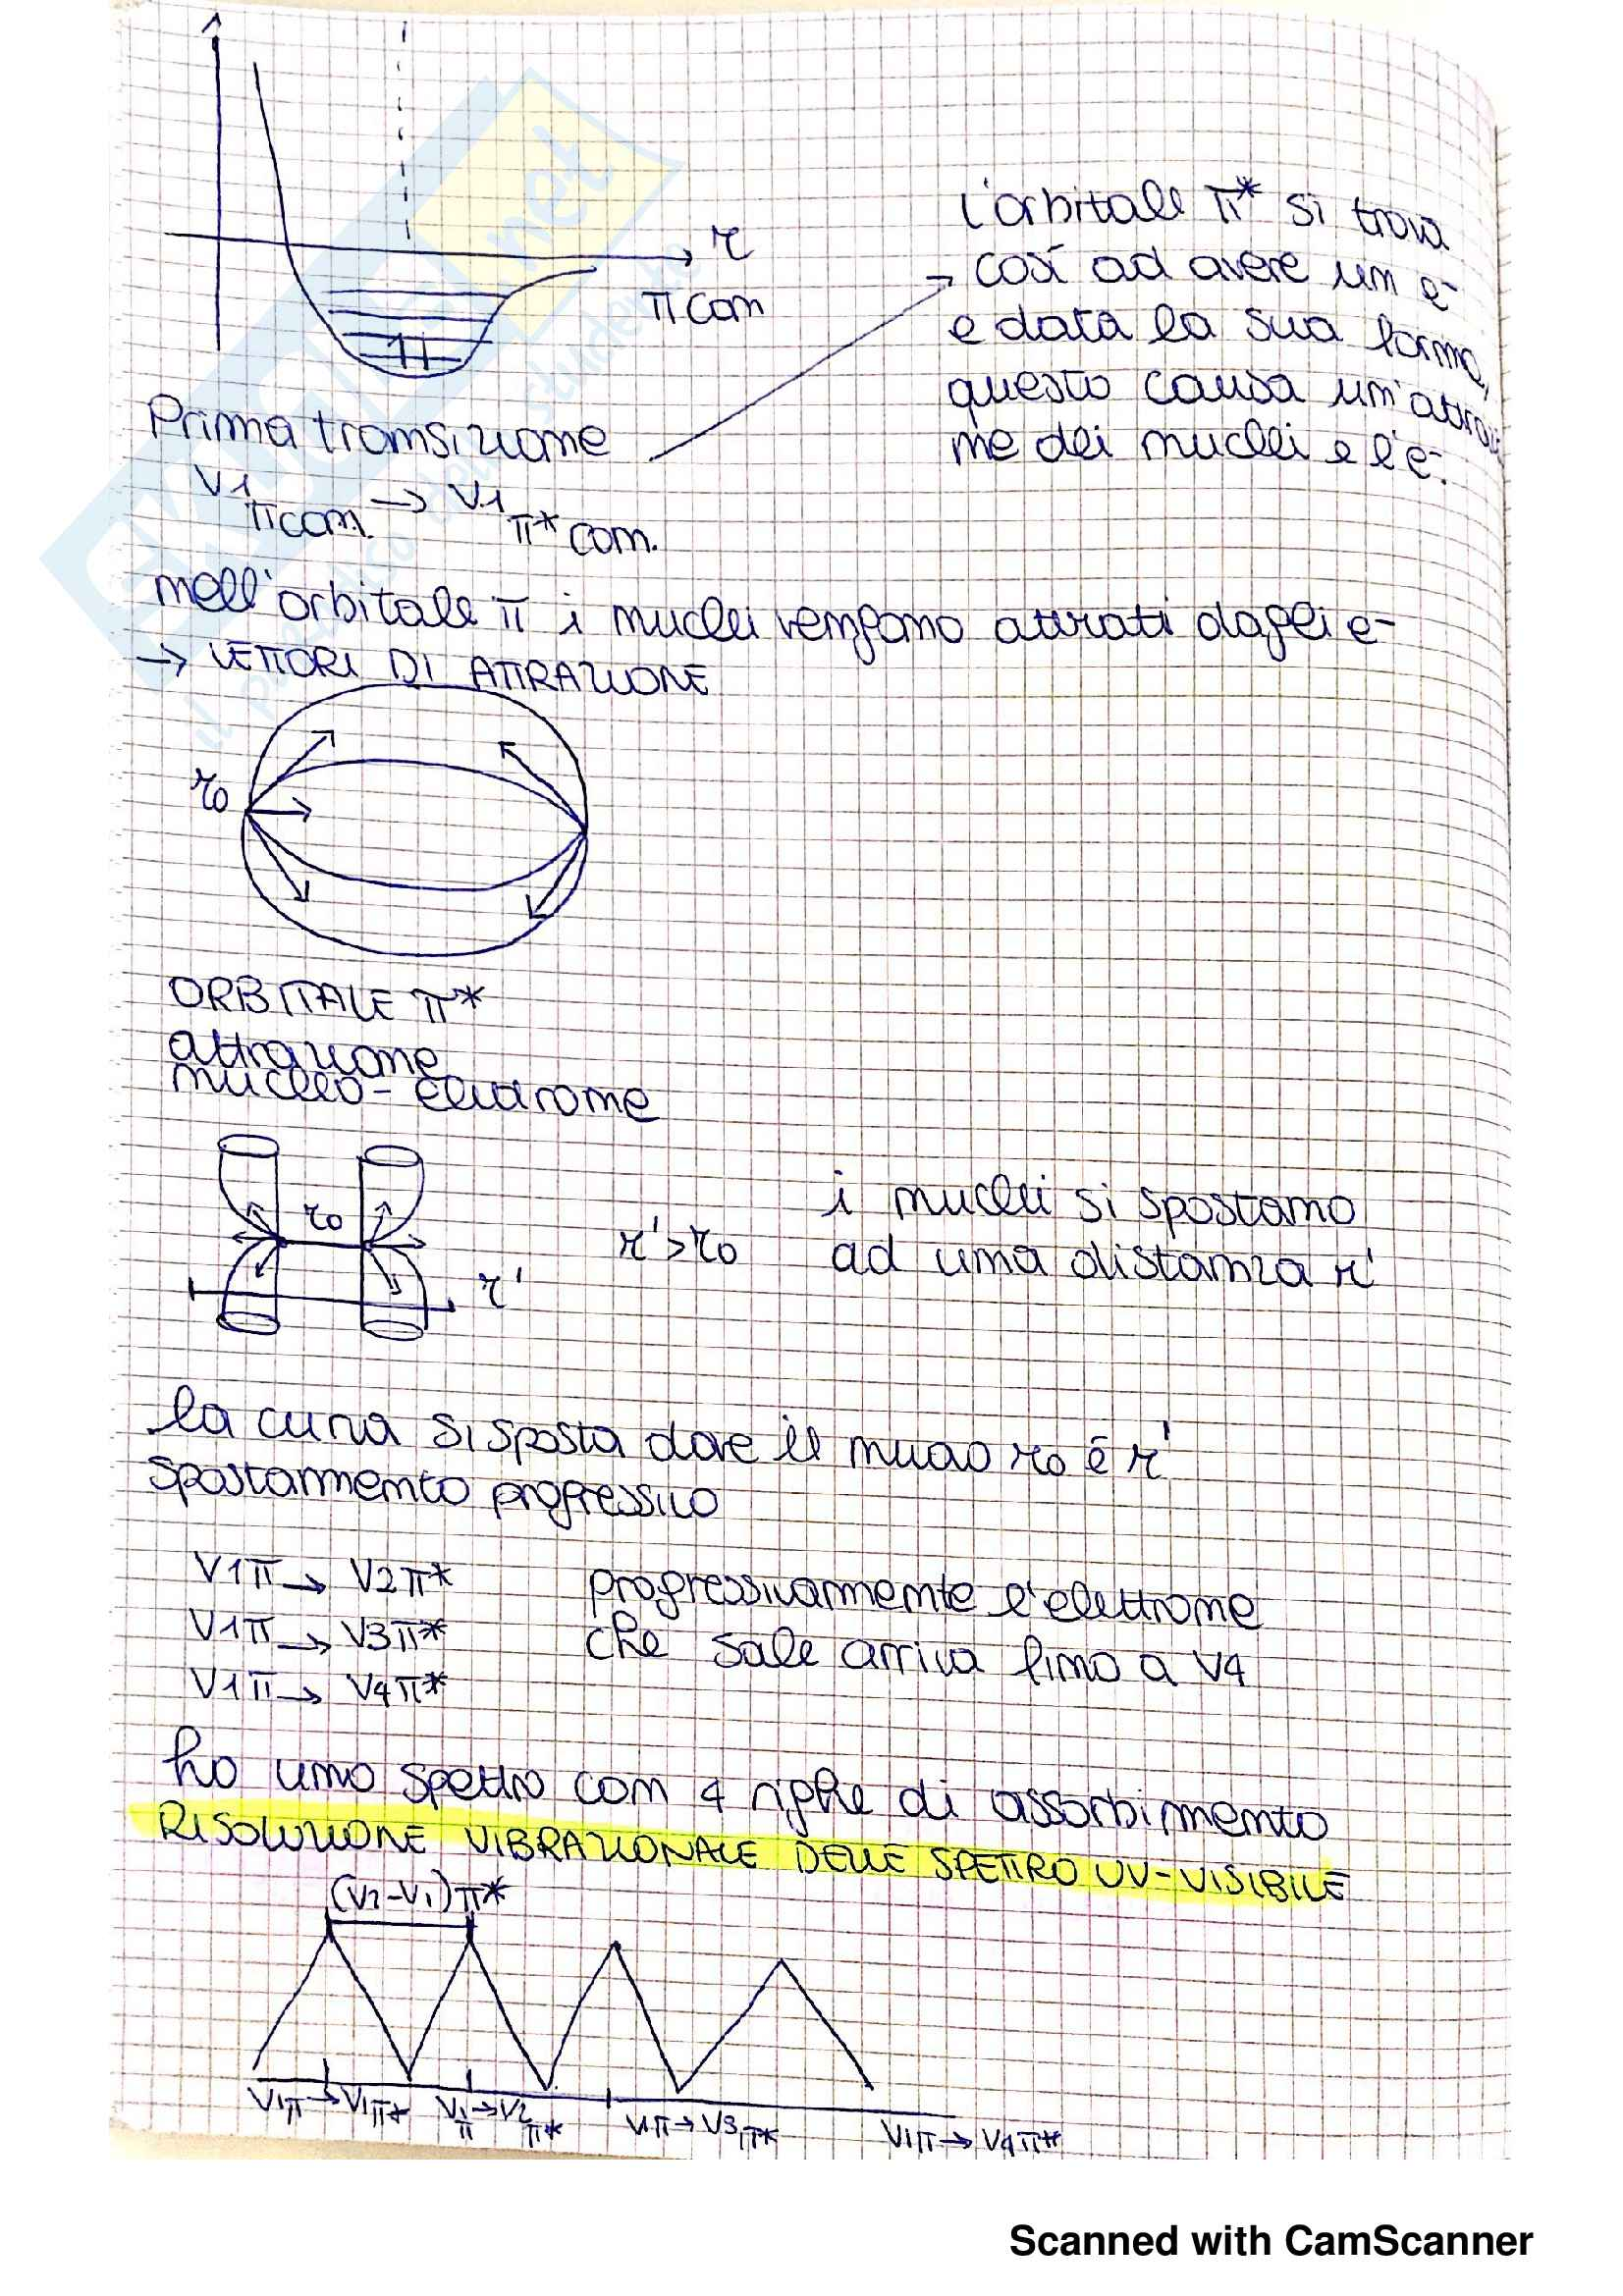 Chimica Fisica pt.7 Pag. 1